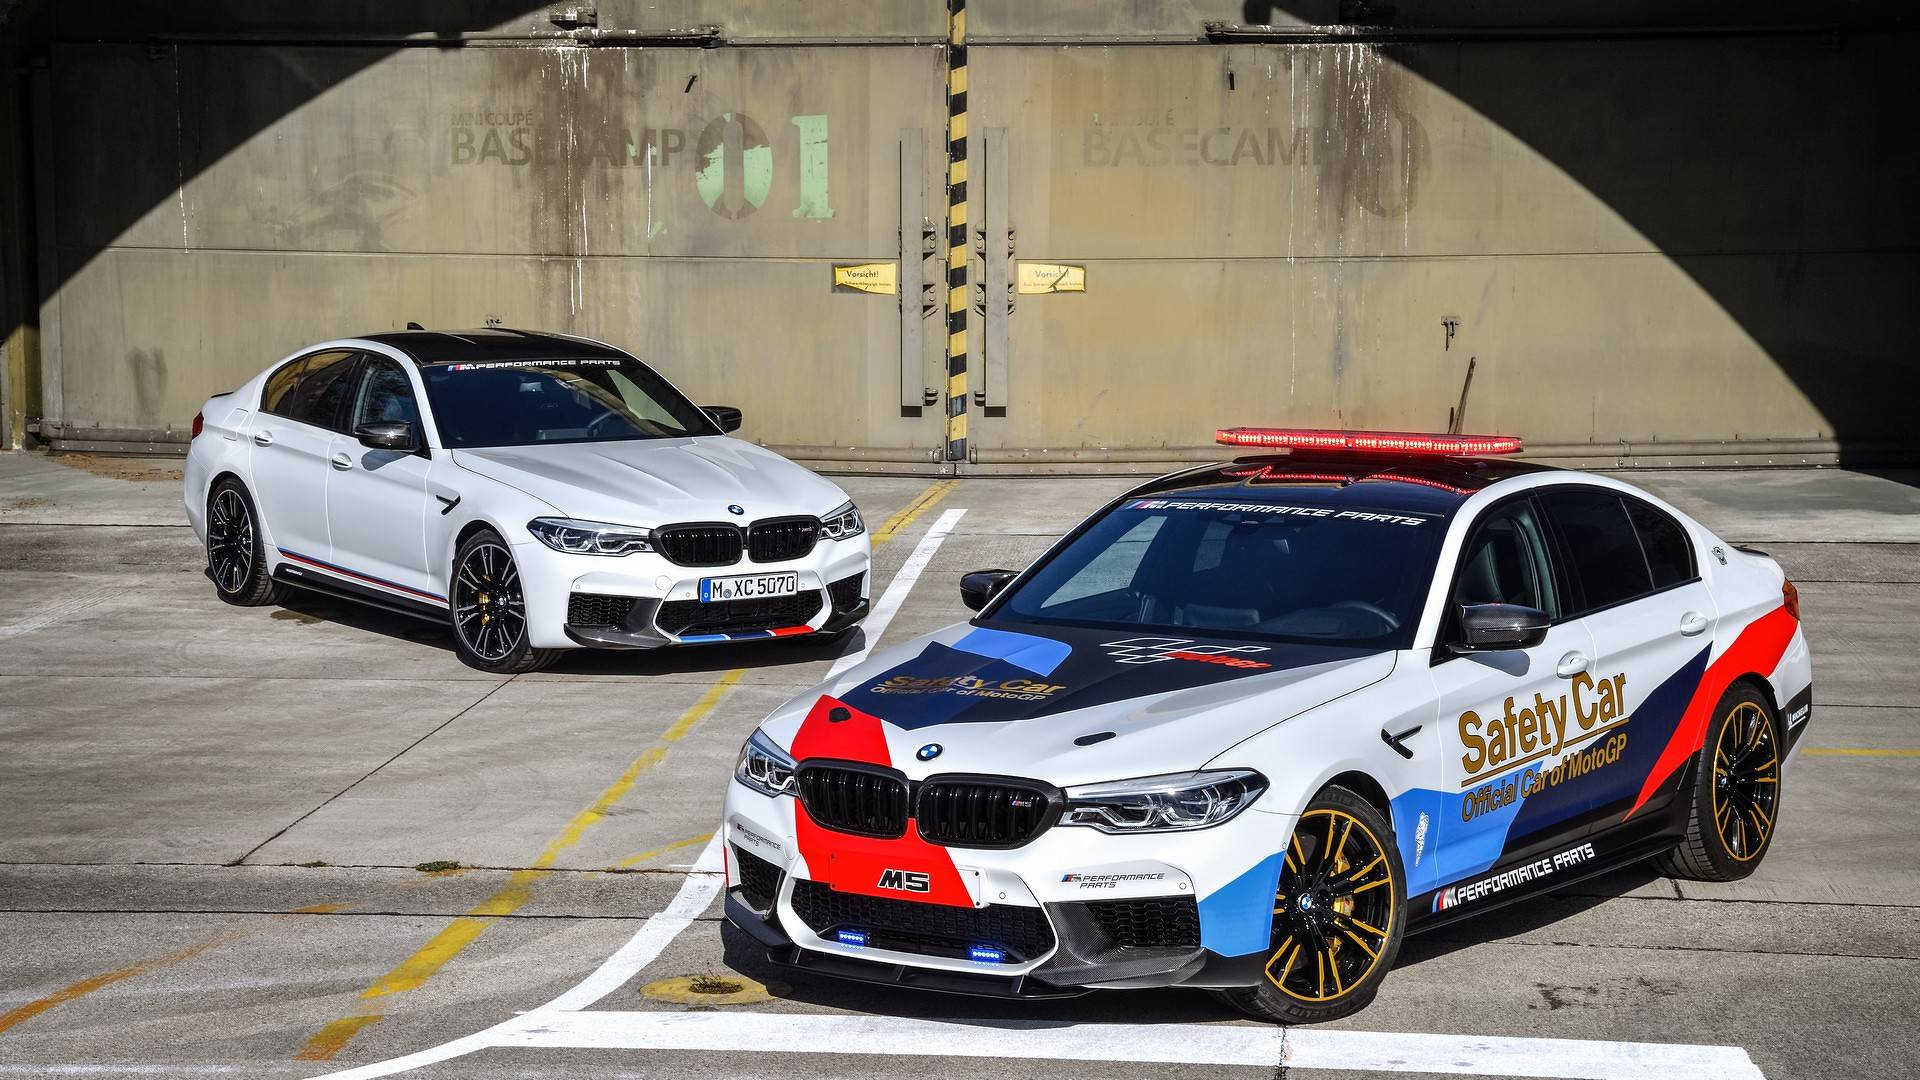 bmw-m5-motogp-safety-car (13)